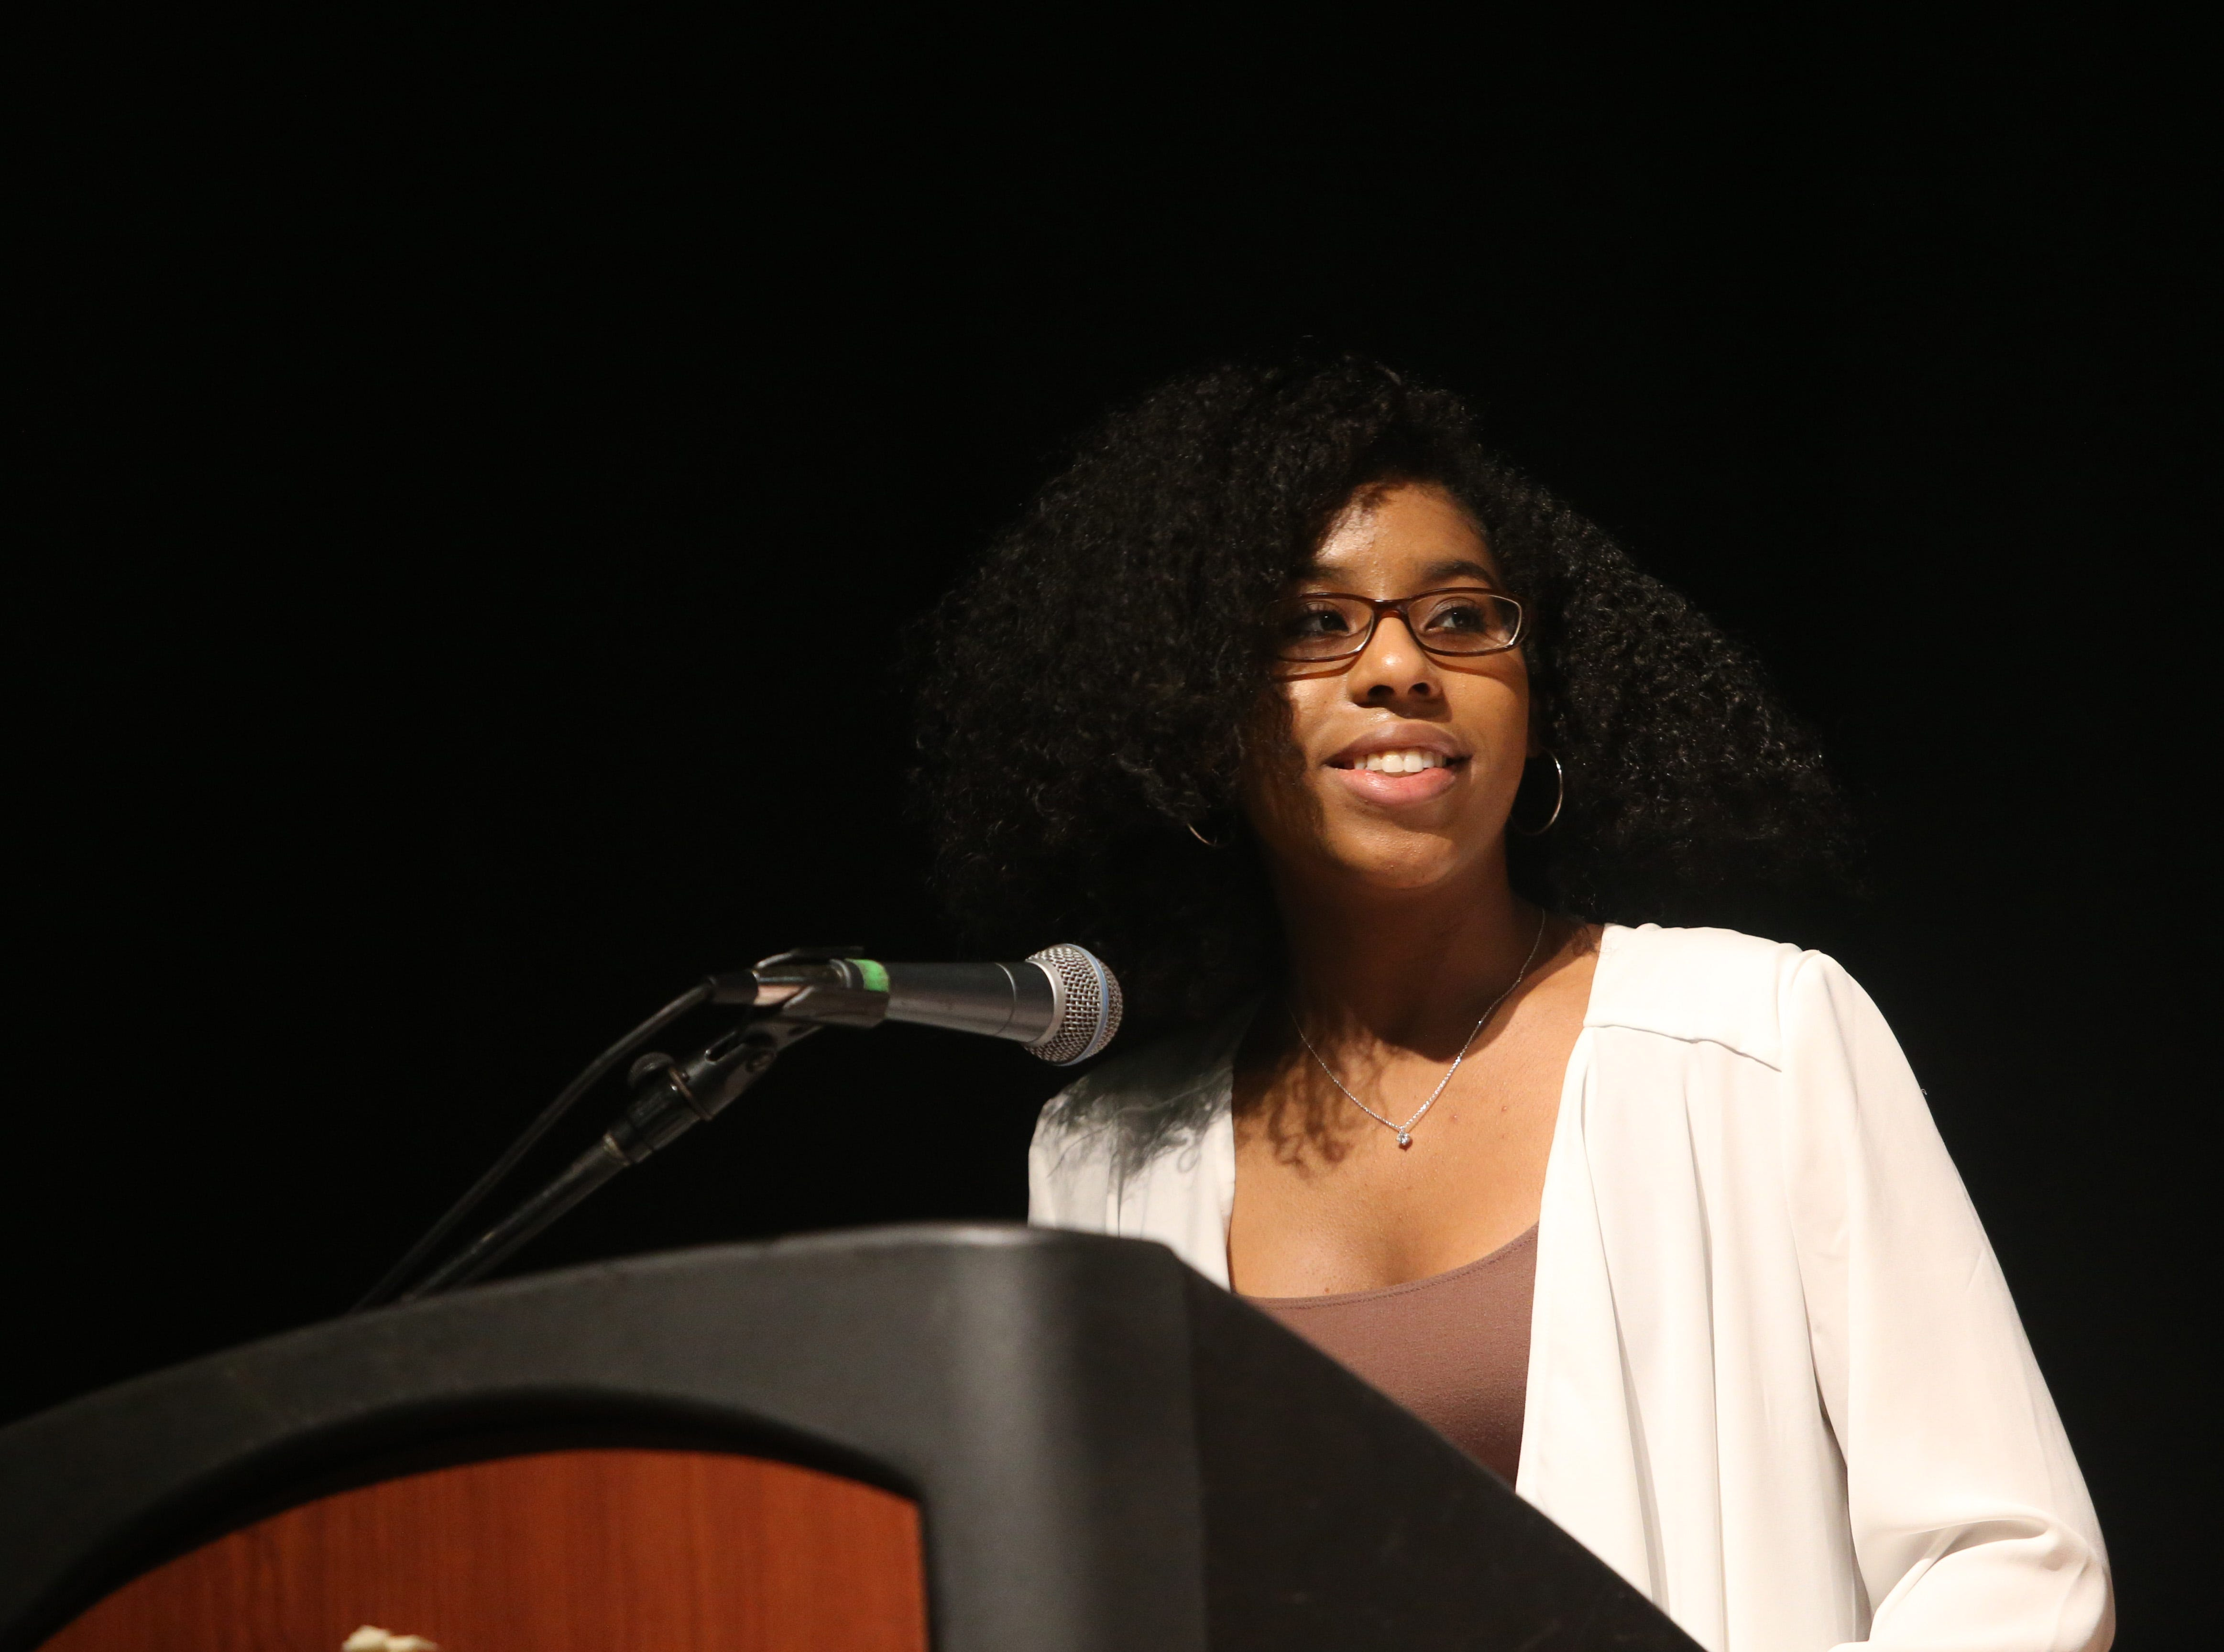 Youth honoree Sashawna A. Isaacs speaks during the Martin Luther King Jr. Breakfast in the City of Poughkeepsie on January 25, 2019.